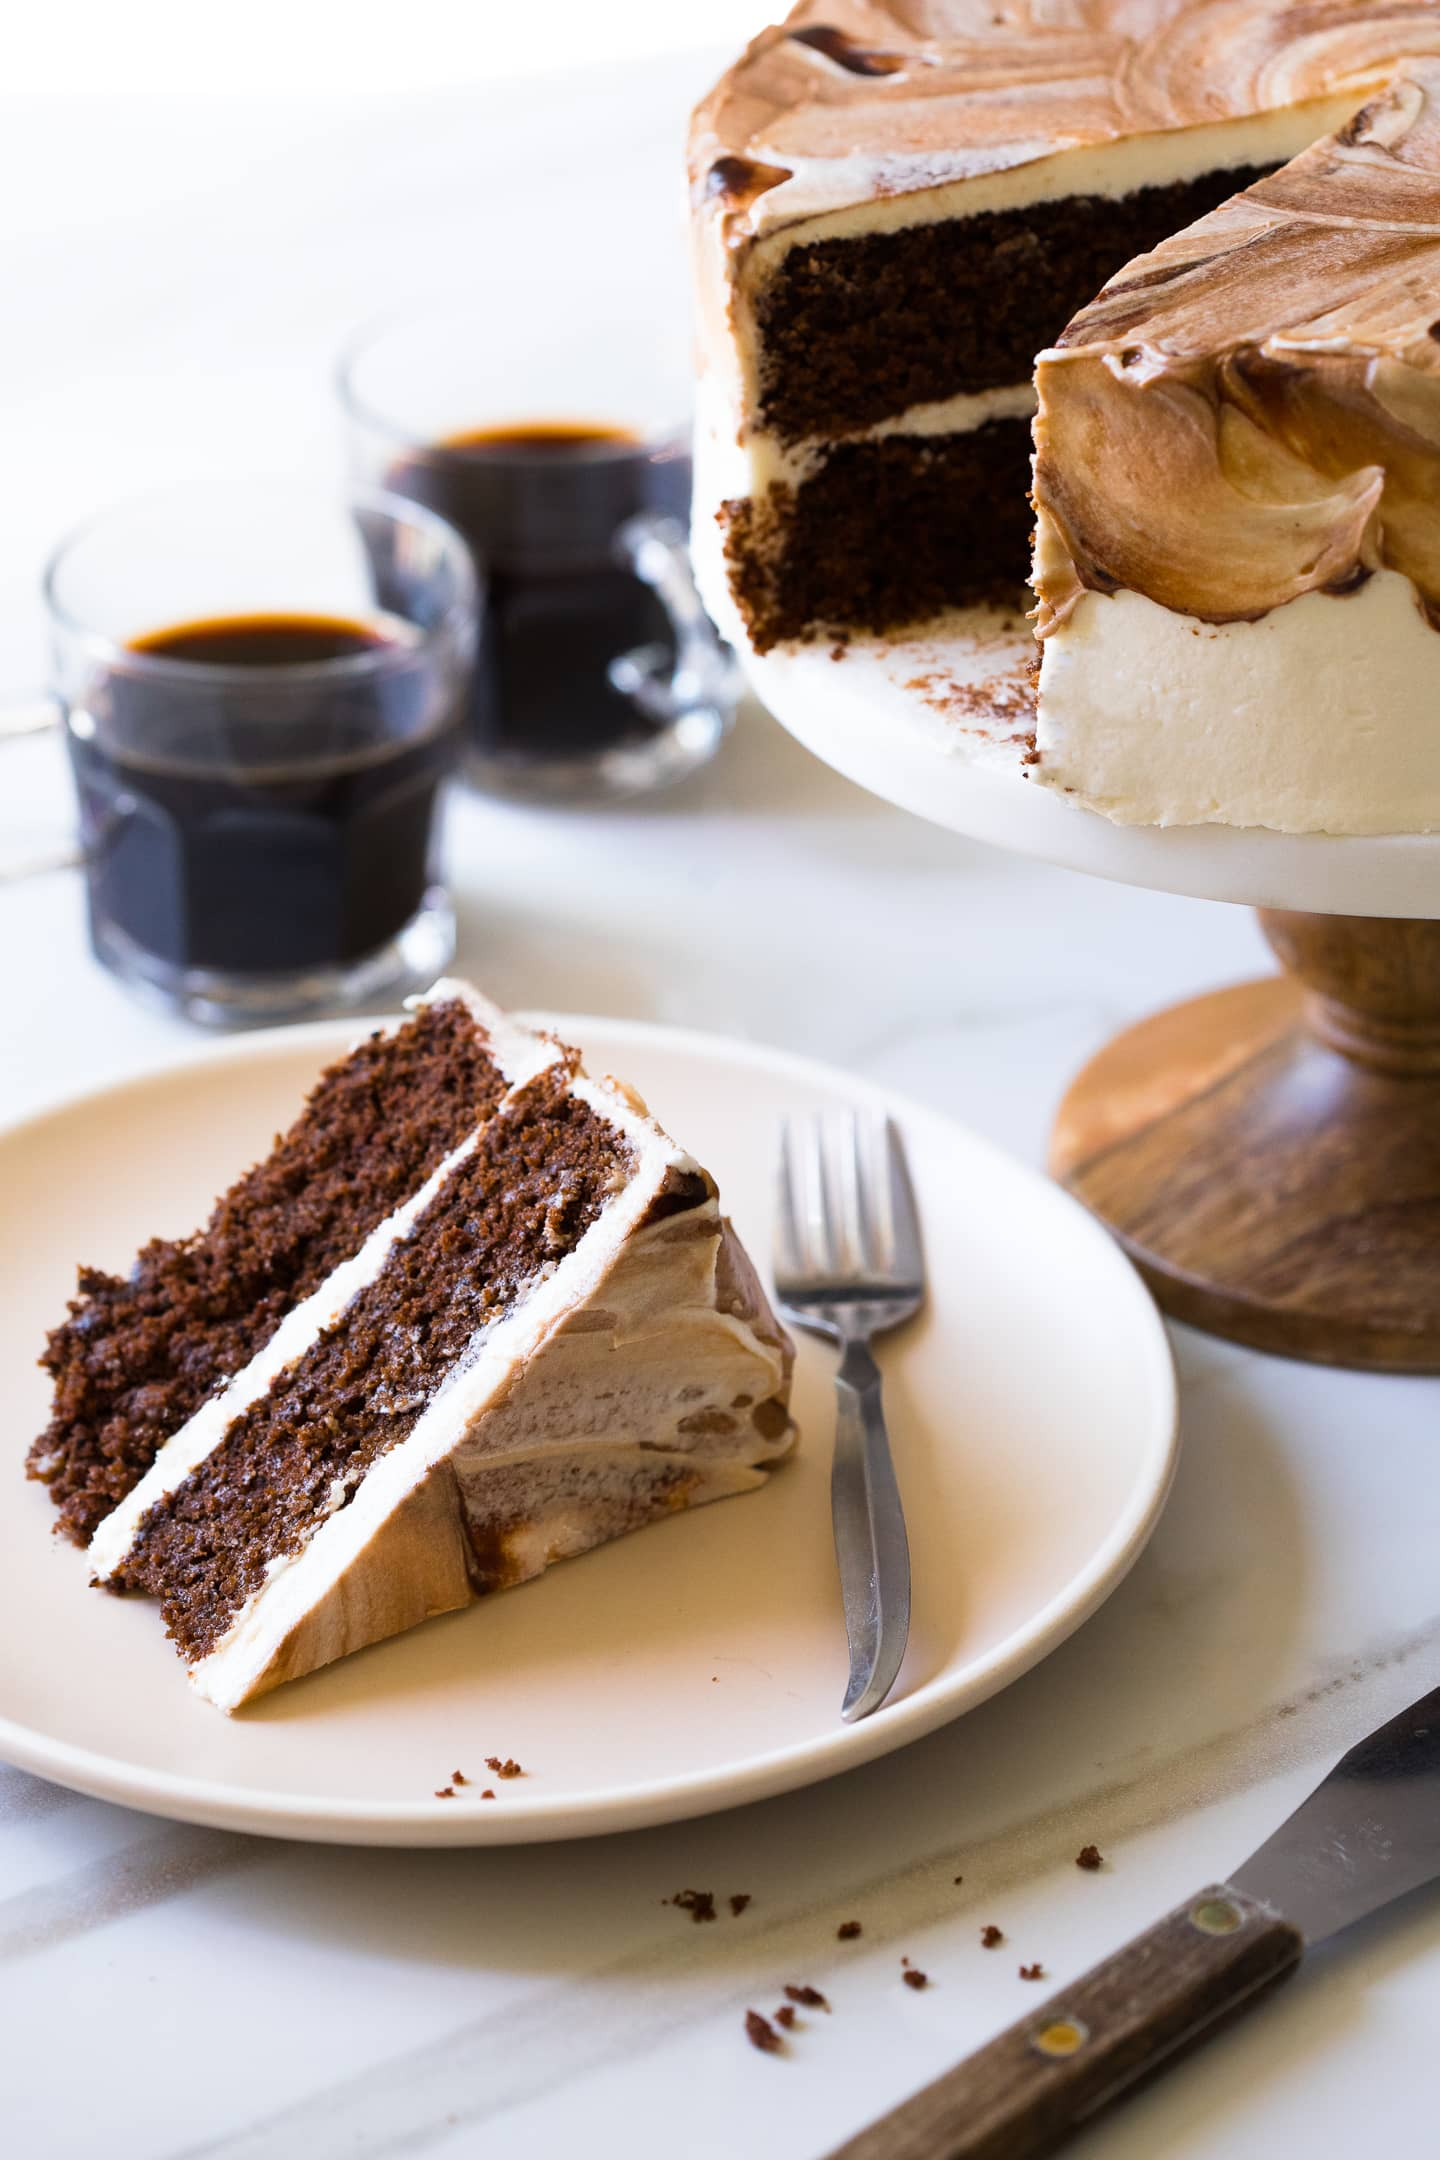 Front-angled view of a slice of Vietnamese Coffee Cake on a cream-colored plate, plus two cups of coffee and the full cake in the background.